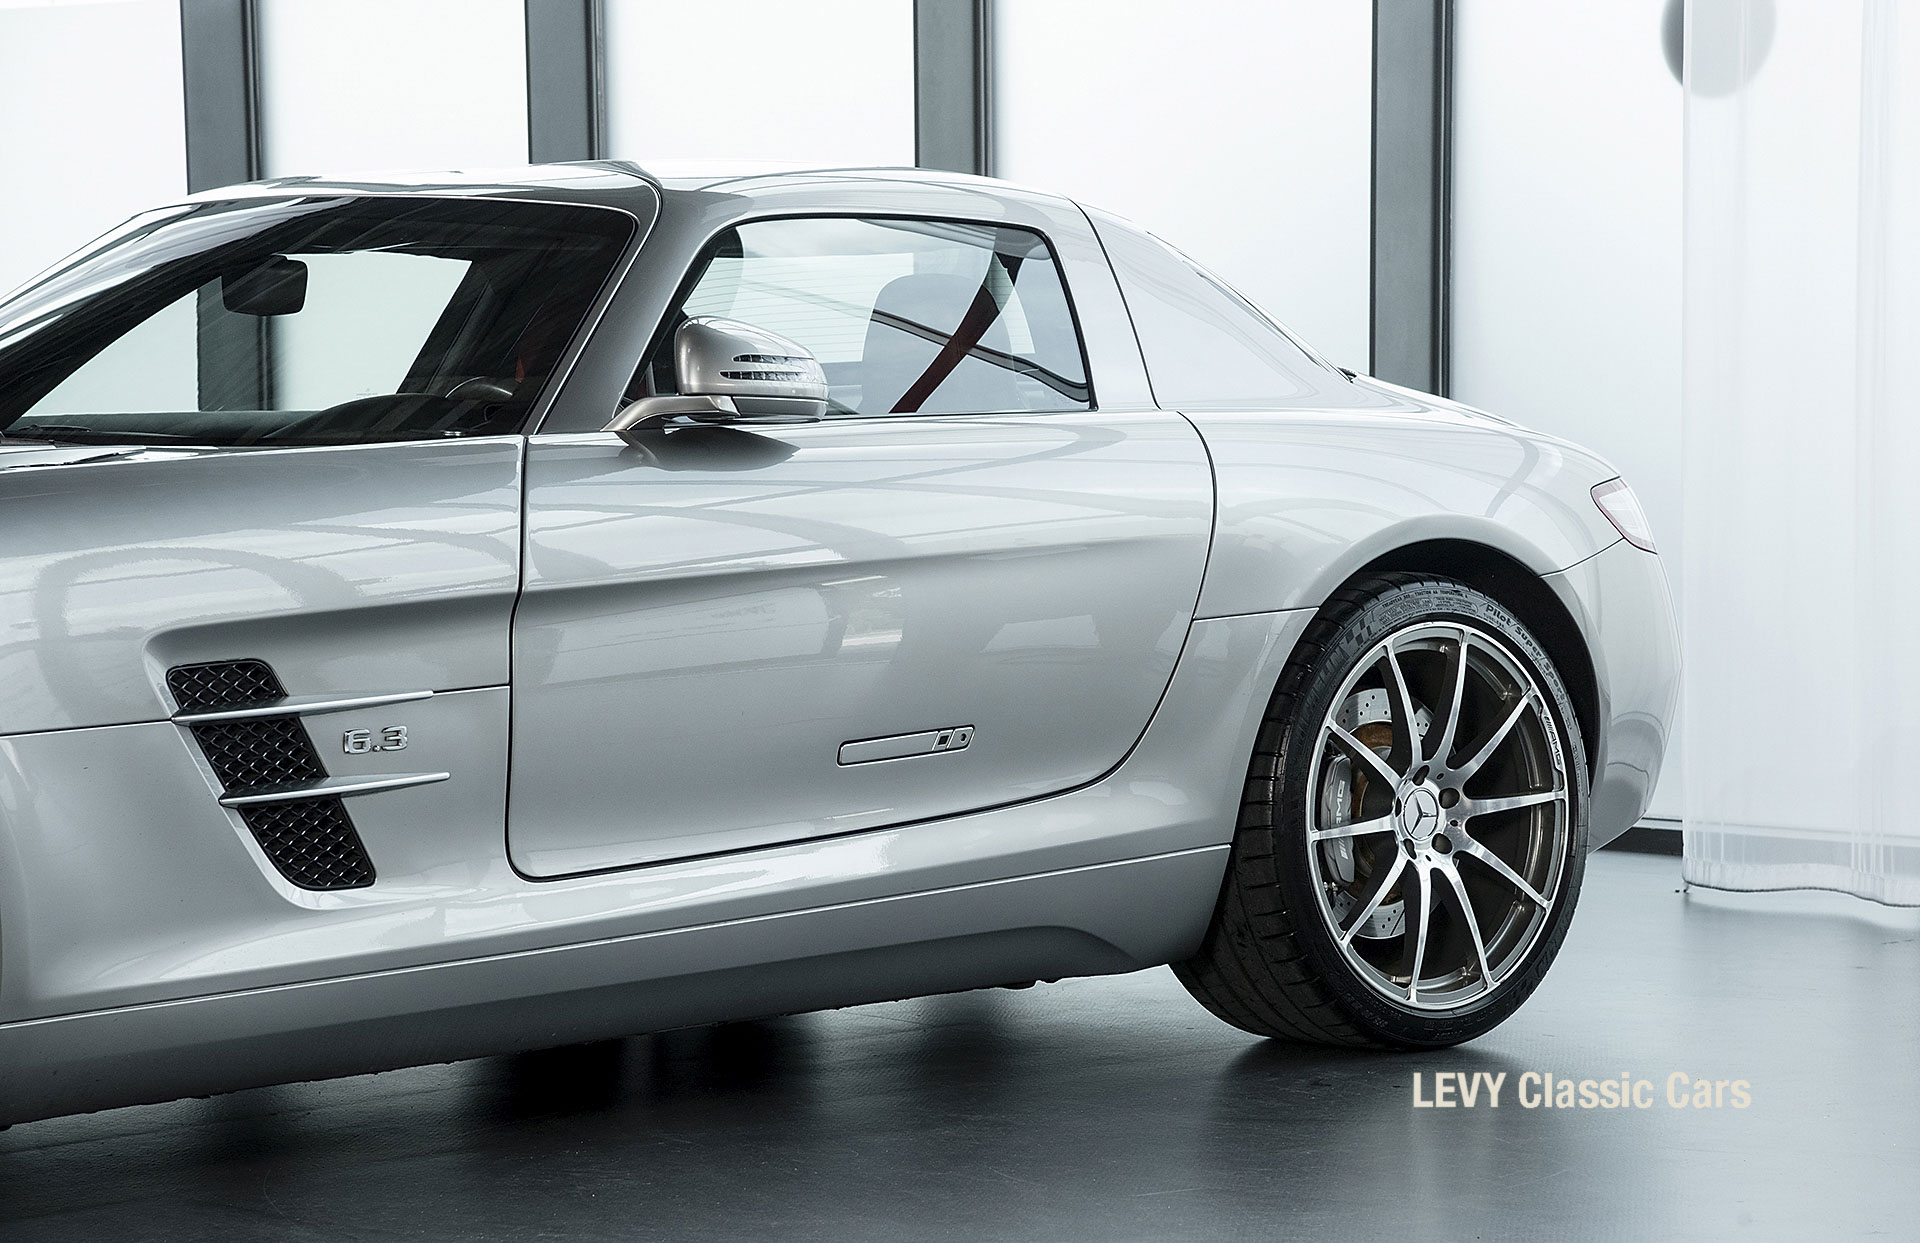 MB SLS AMG 6,3 Coupe 05633 091